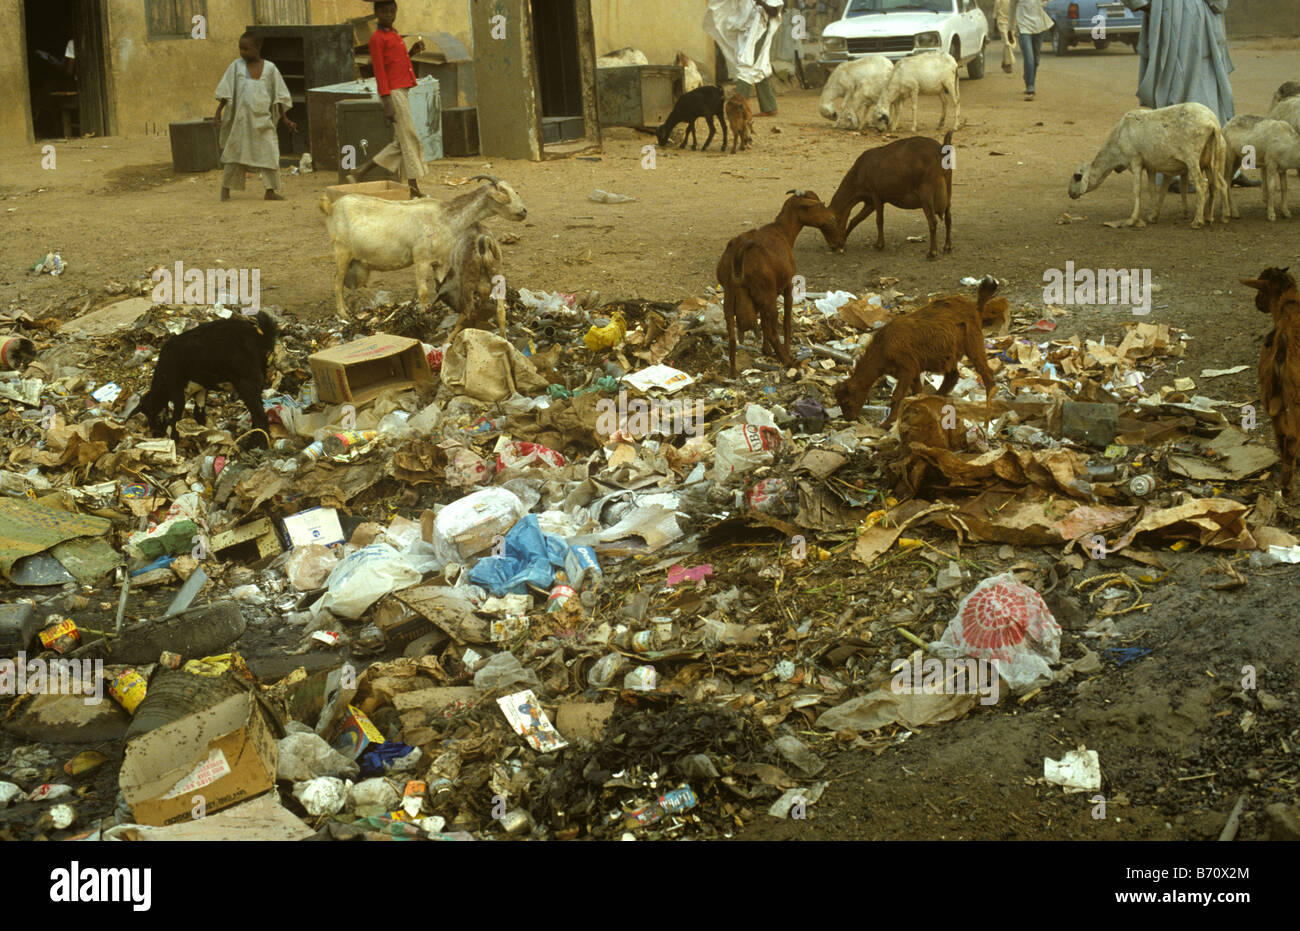 Domestic waste and rubbish on the streets of a Nigerian town - Stock Image